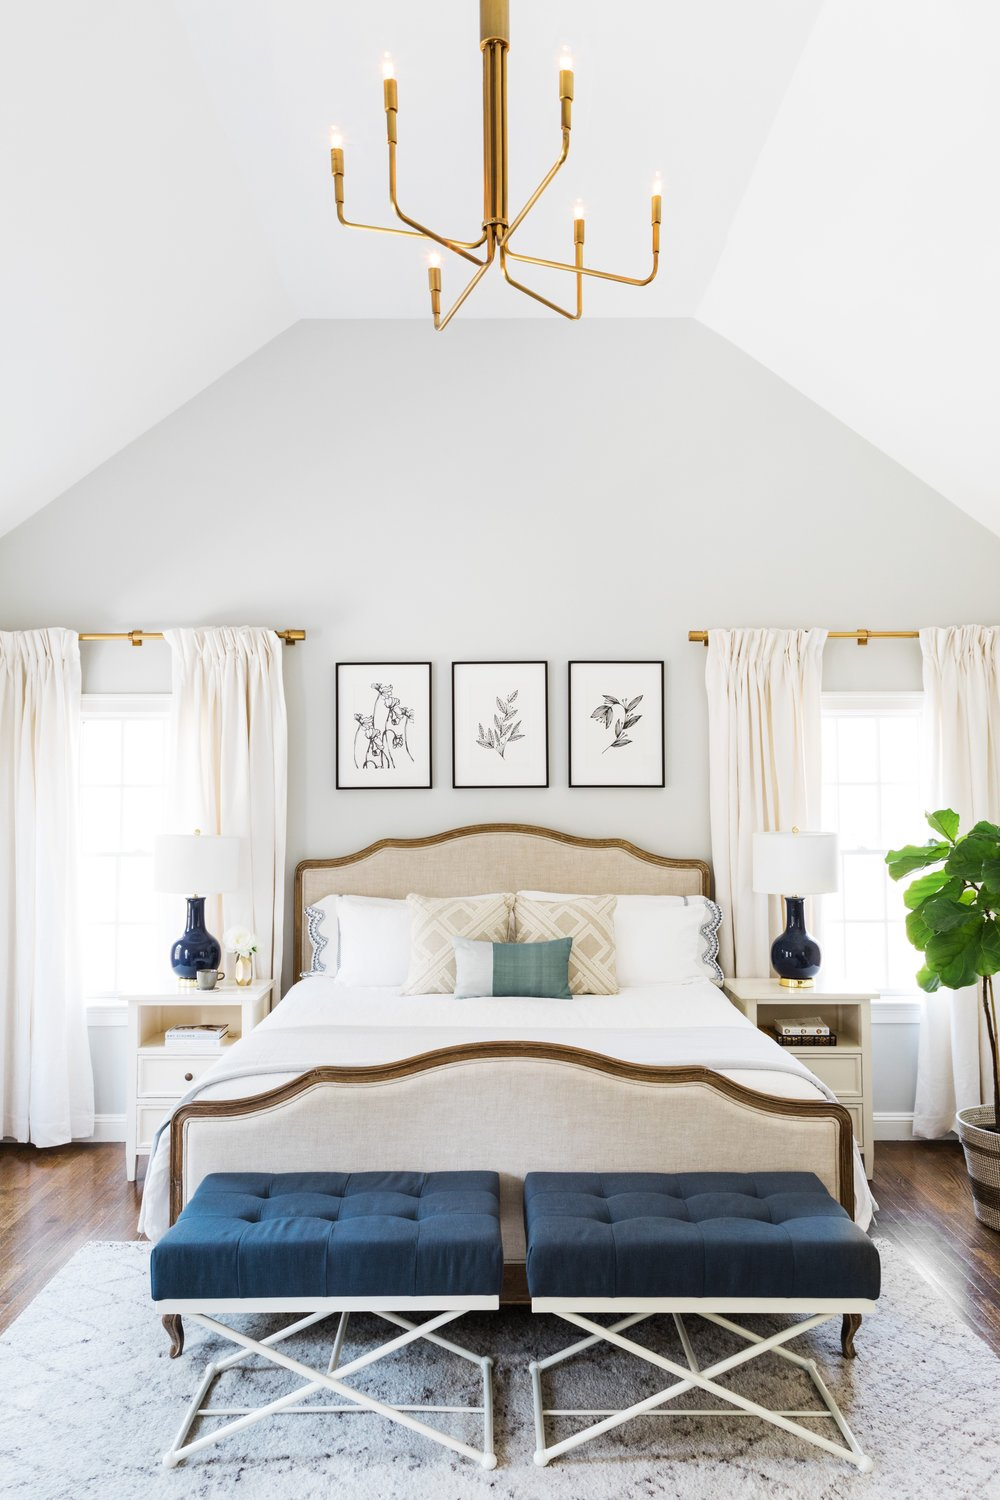 How to decorate around a bed. One option: hang art centered on the wall above the headboard. (Design: Oh, I Design) // traditional bedroom, neutral bedroom, upholstered bed